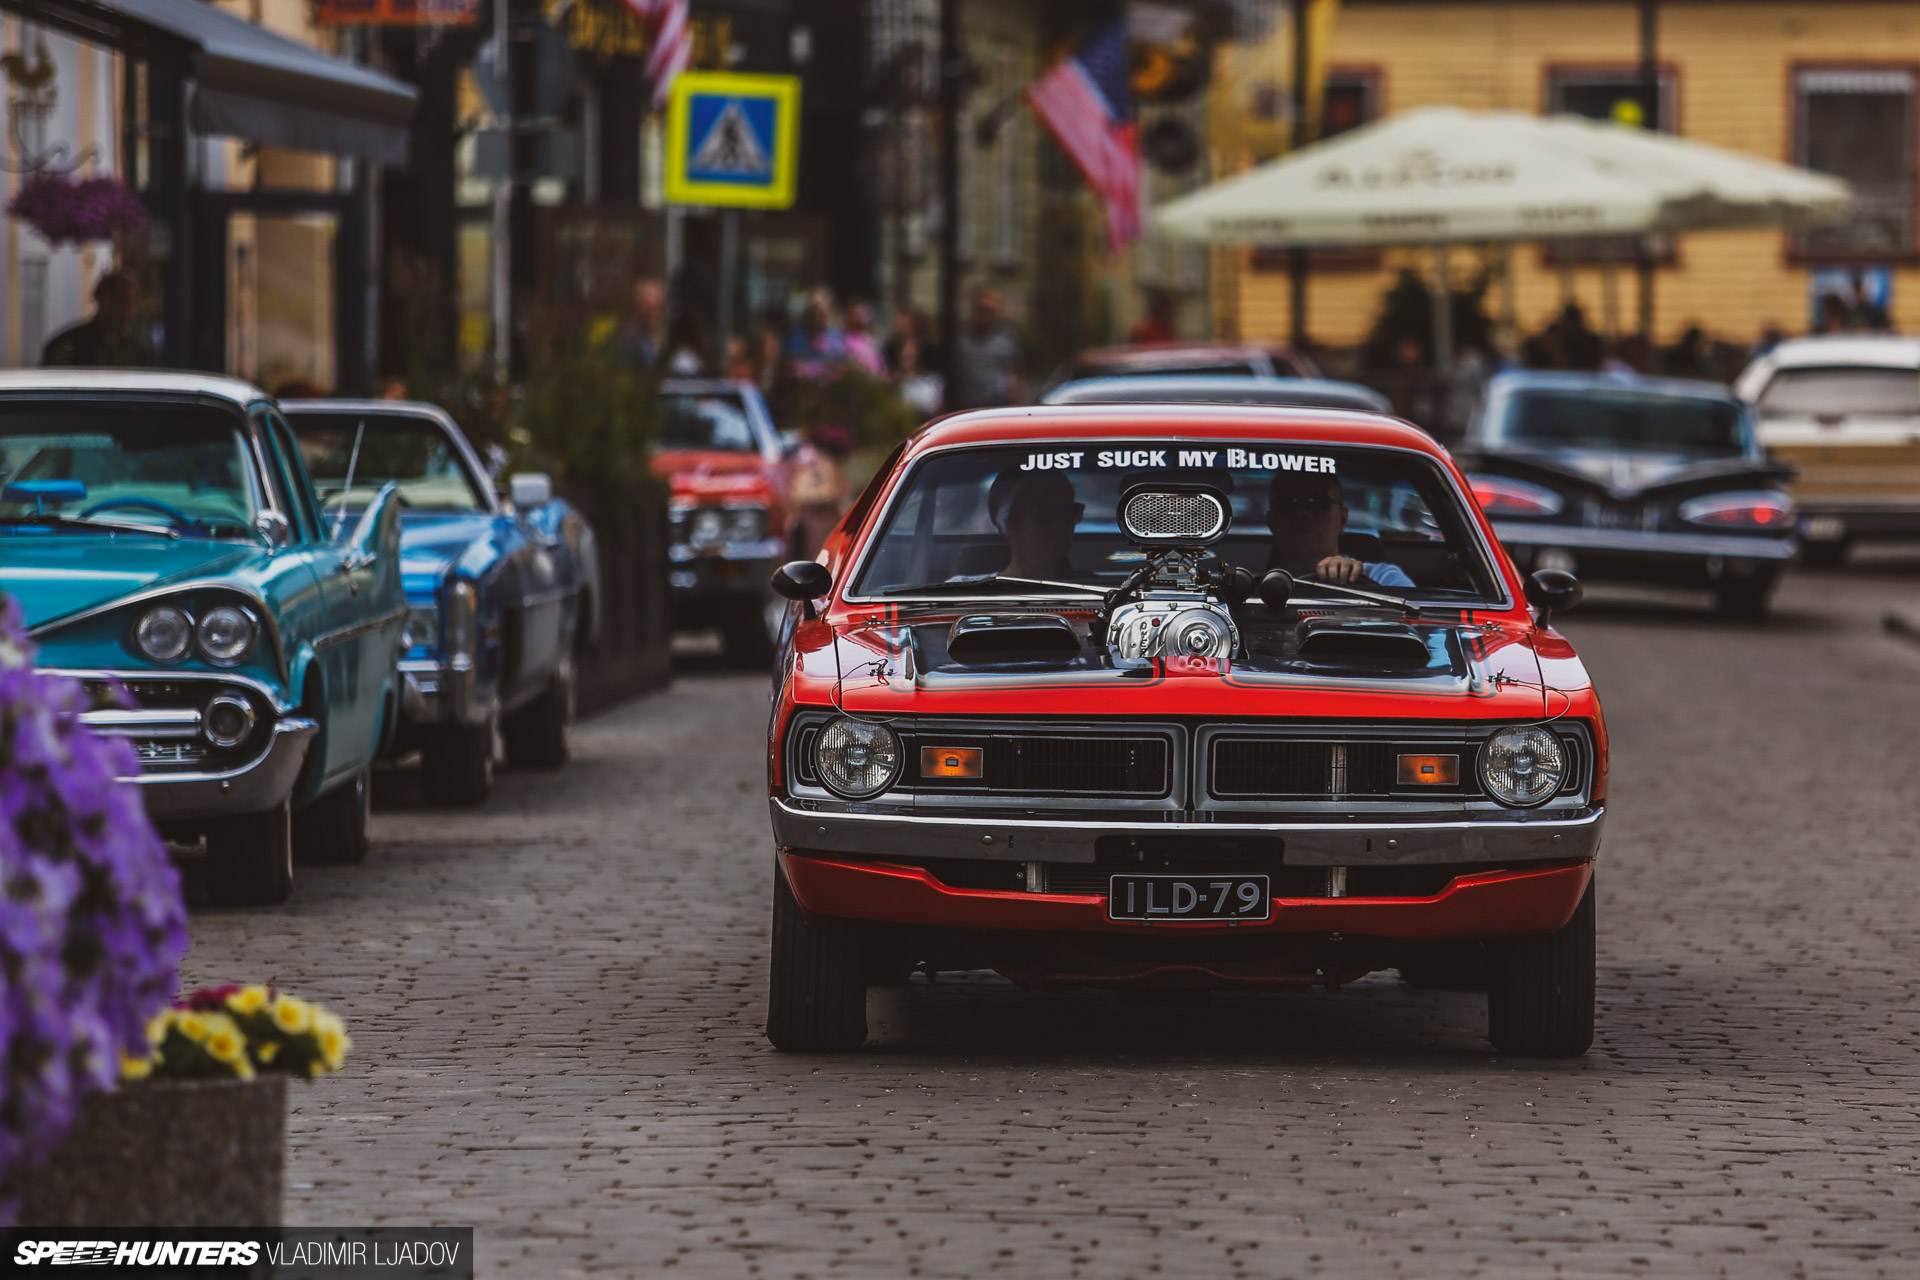 Celebrating American Car Culture In A Post-Soviet Land - Speedhunters